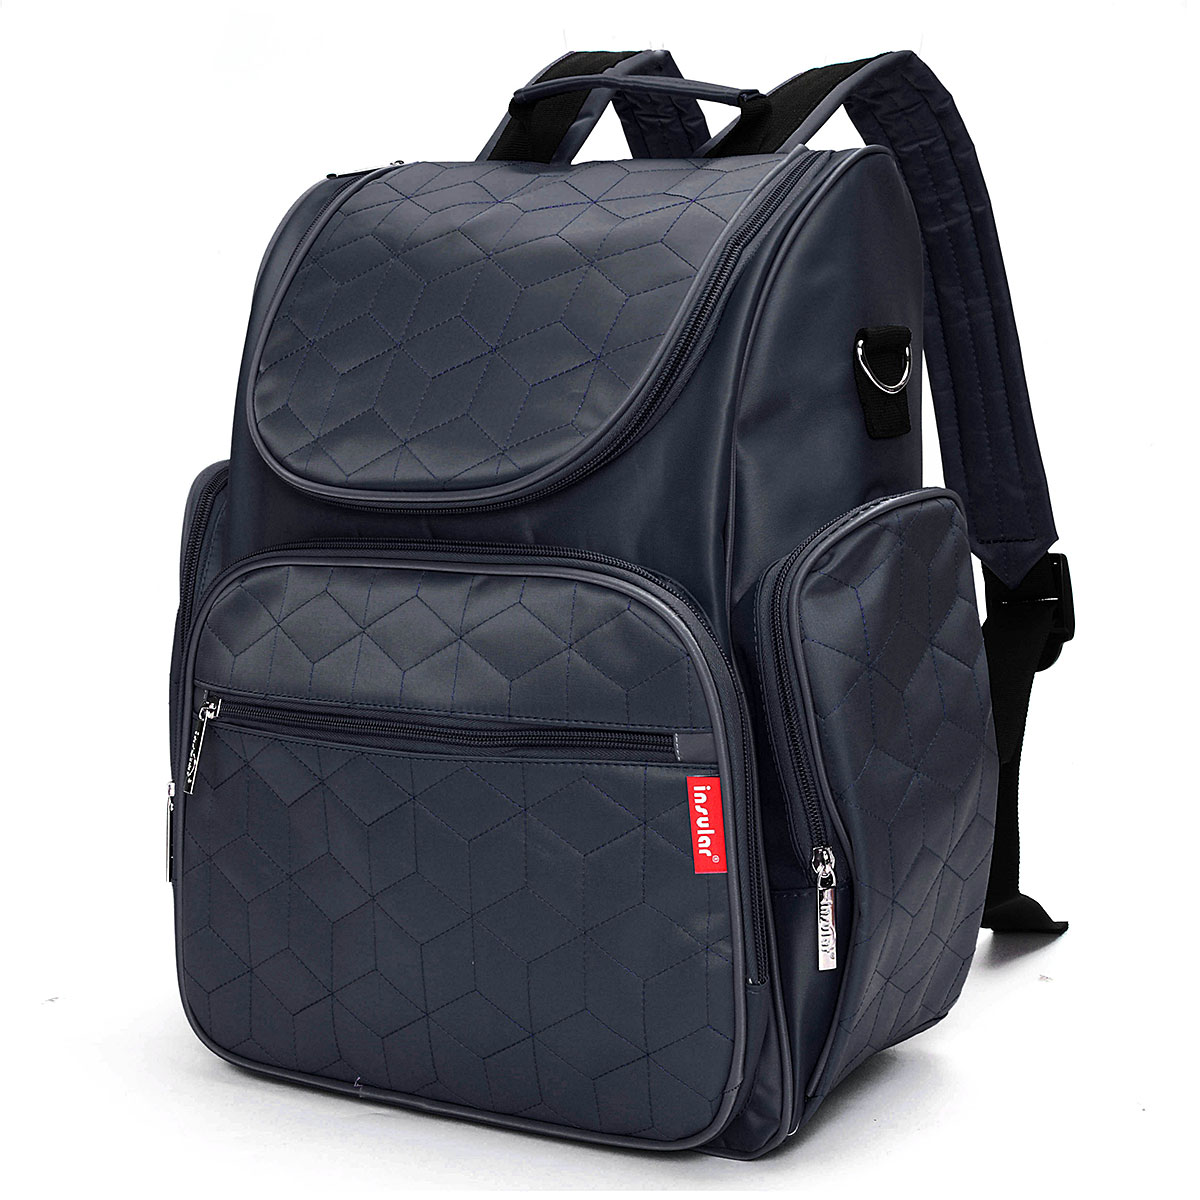 5 Rank Backpack Diaper Bags Best Seller